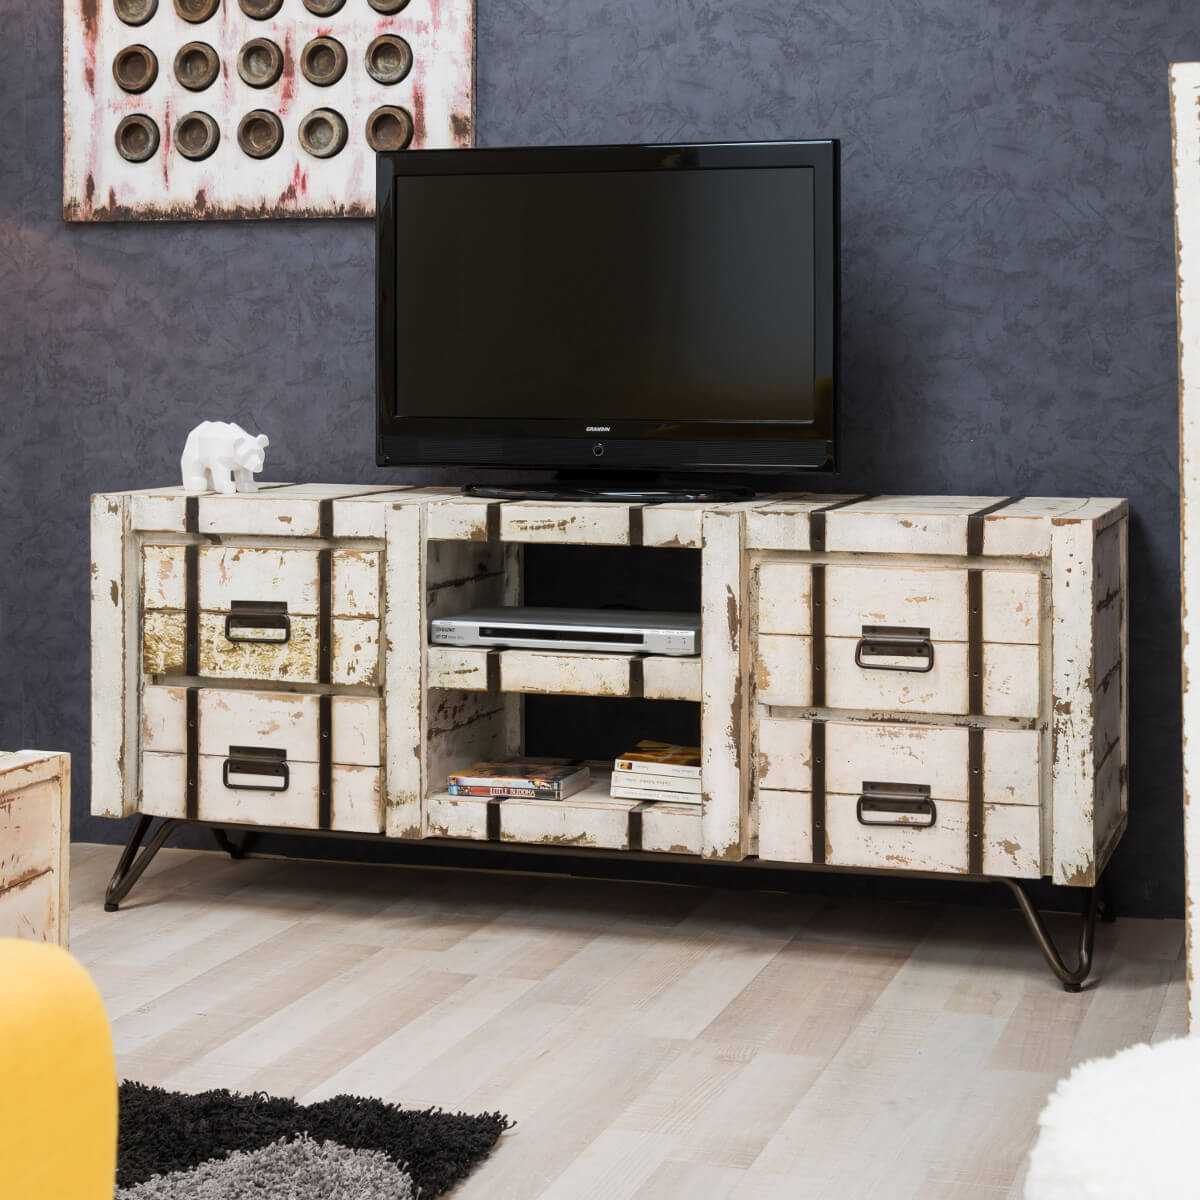 meuble tv loft : meuble tv industriel, bois massif, rectangle, blanc